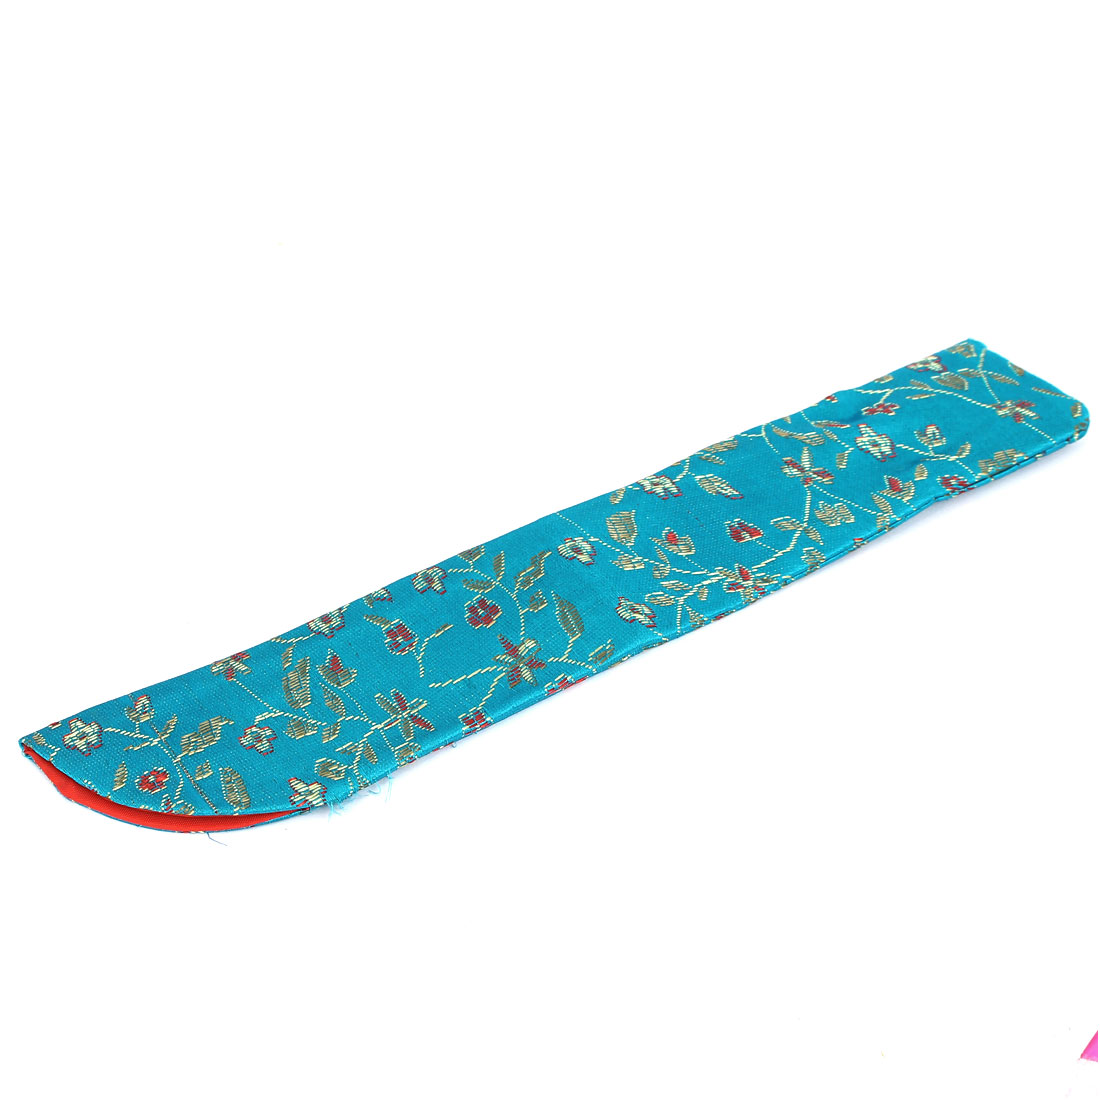 Flower Pattern Folding Hand Fan Party Gift Bag Pouch Holder Protector Teal Blue